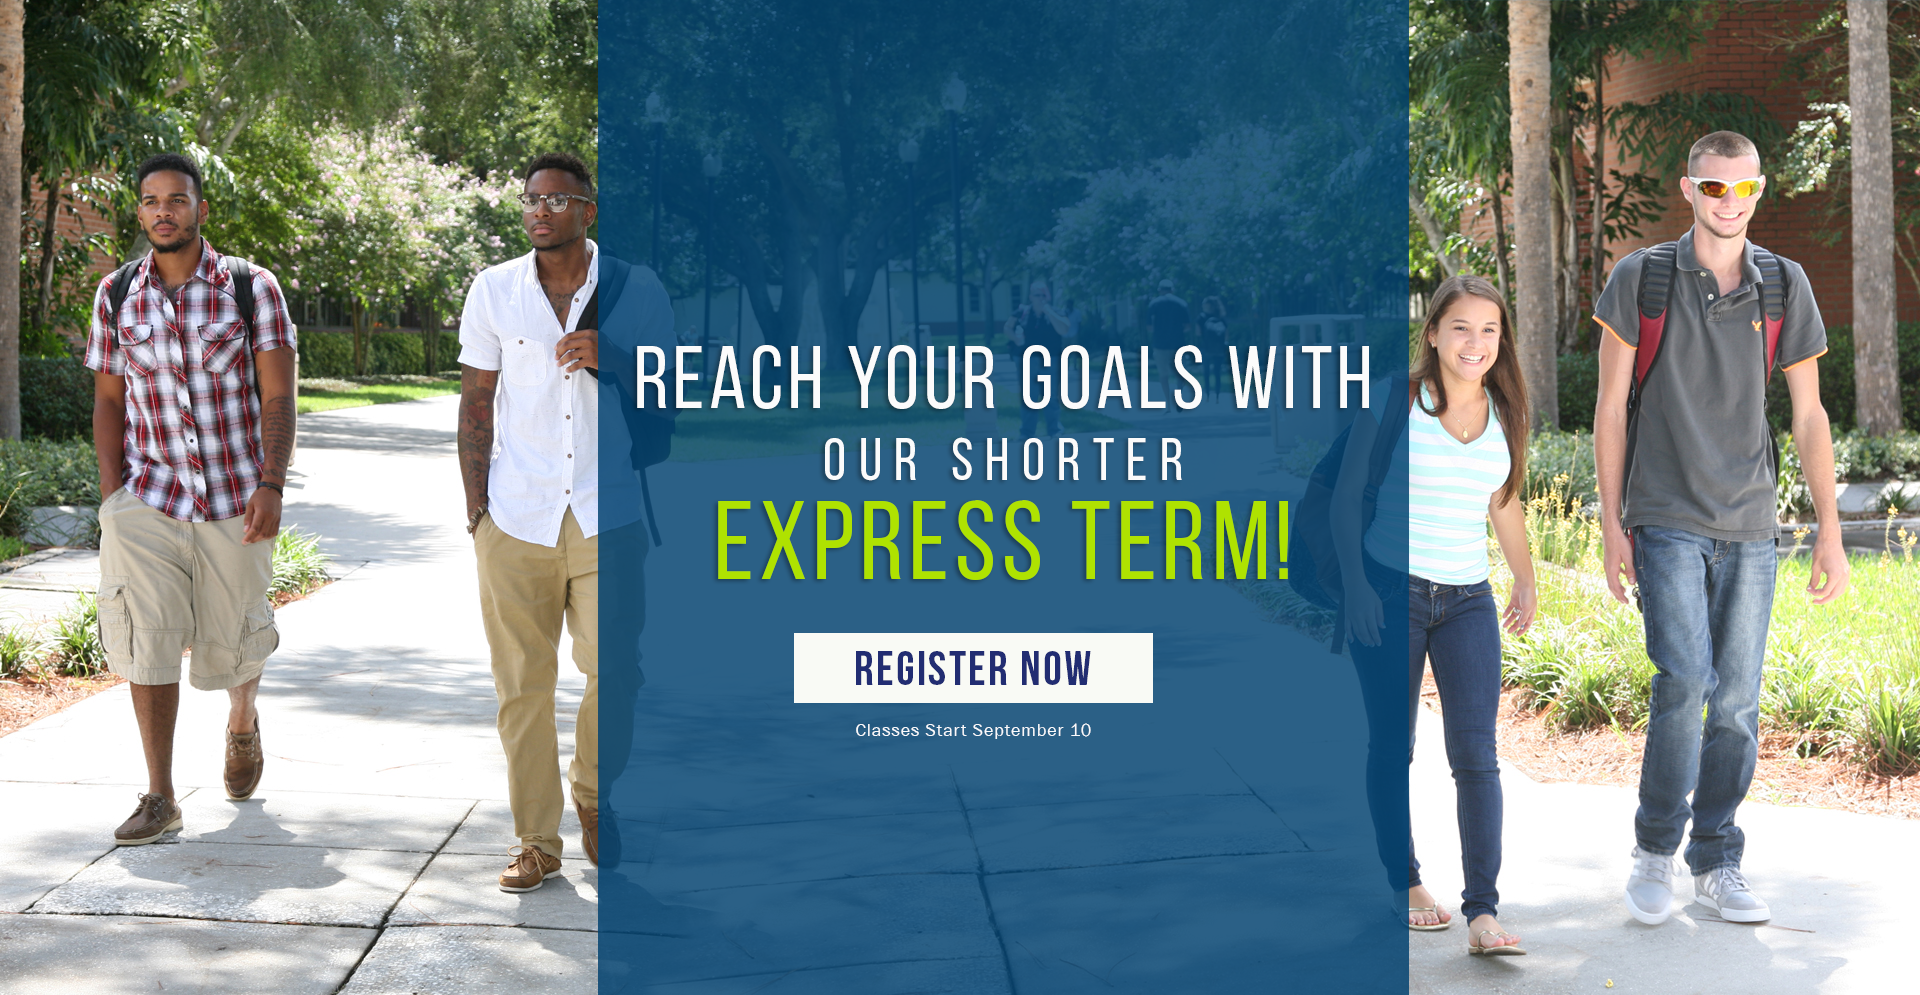 Reach your goals with our shorter express term